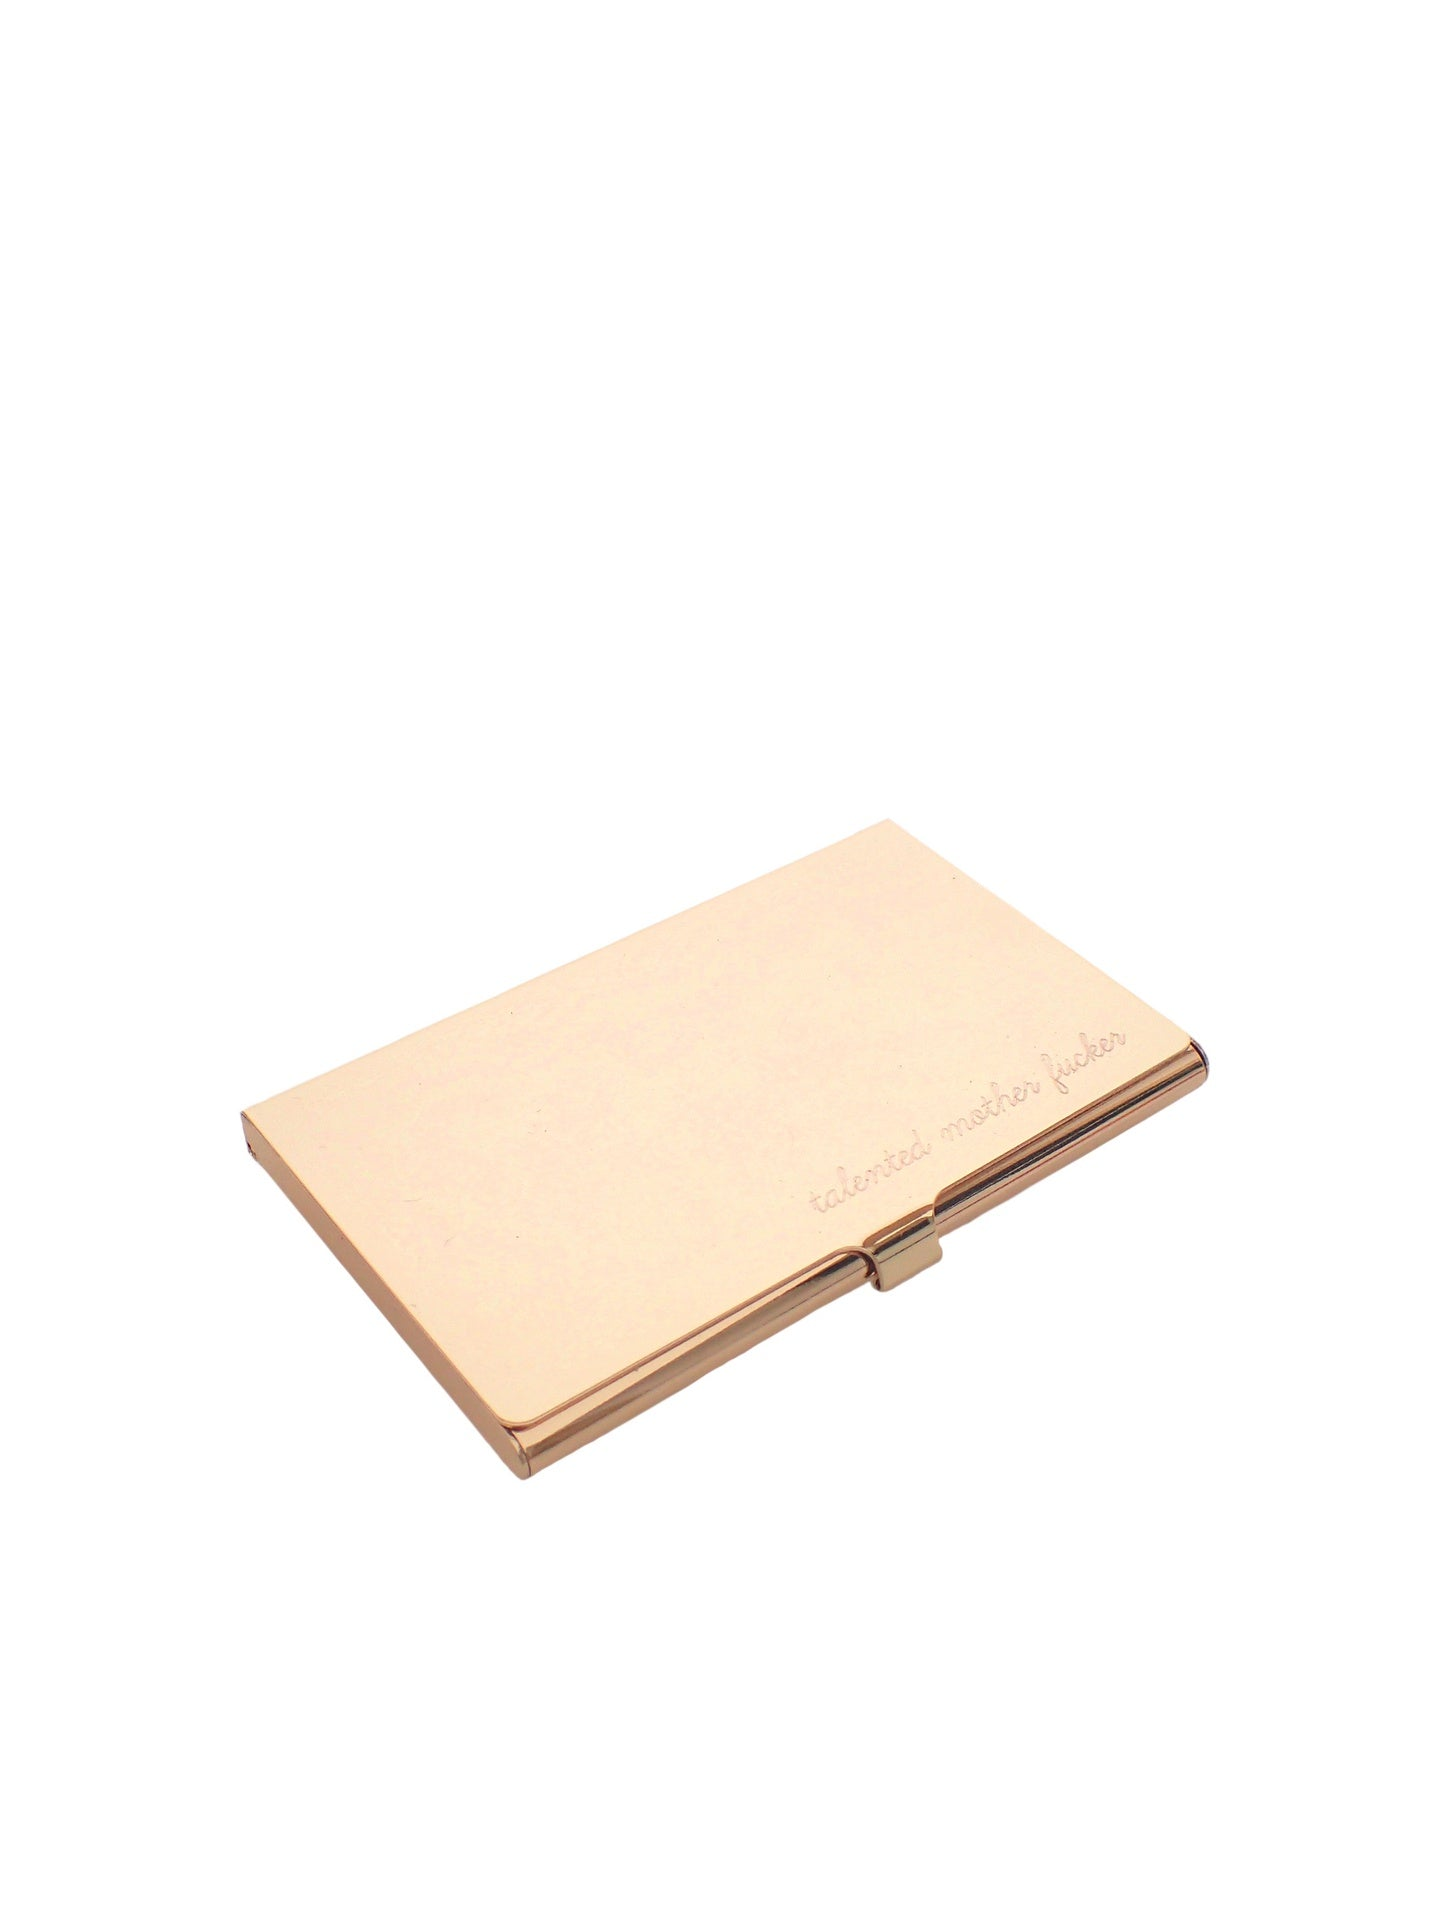 IGWT - Card Case / talented mother fucker / Gold Tone